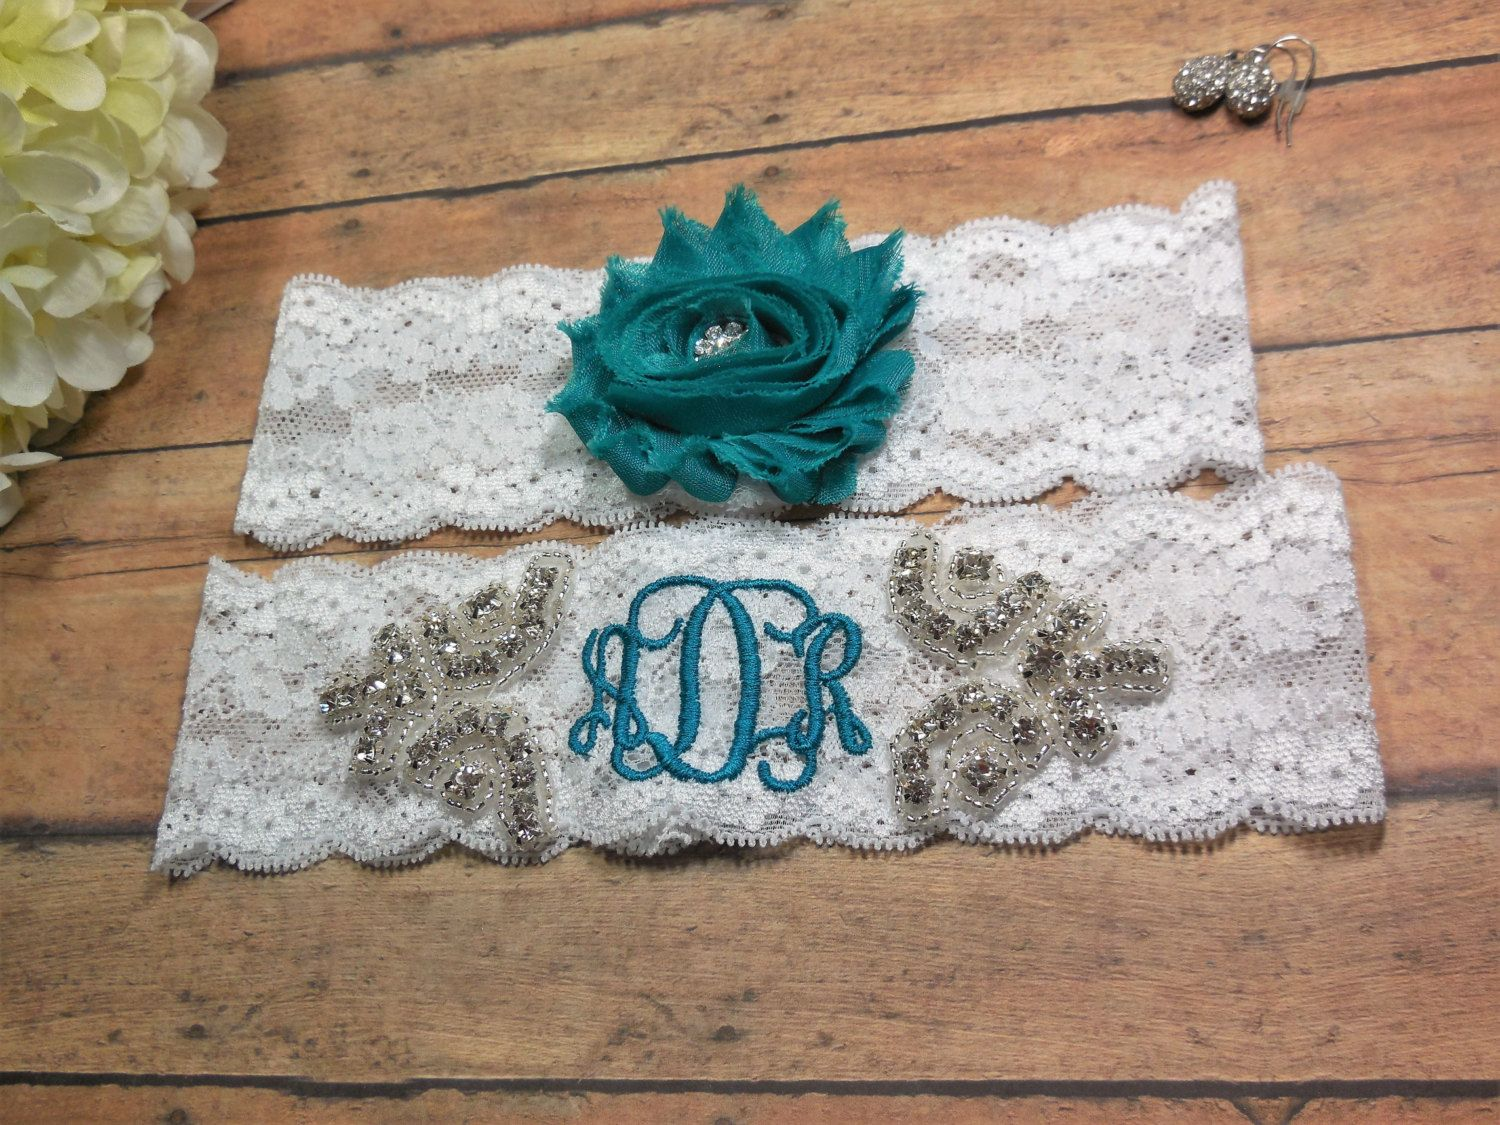 Monogrammed Garter, Teal Garter, Turquoise Garter, Rhinestone Garter, Bling Garter, Garter, Personalized Garter, Wedding, Custom Garter by BloomsandBlessings on Etsy